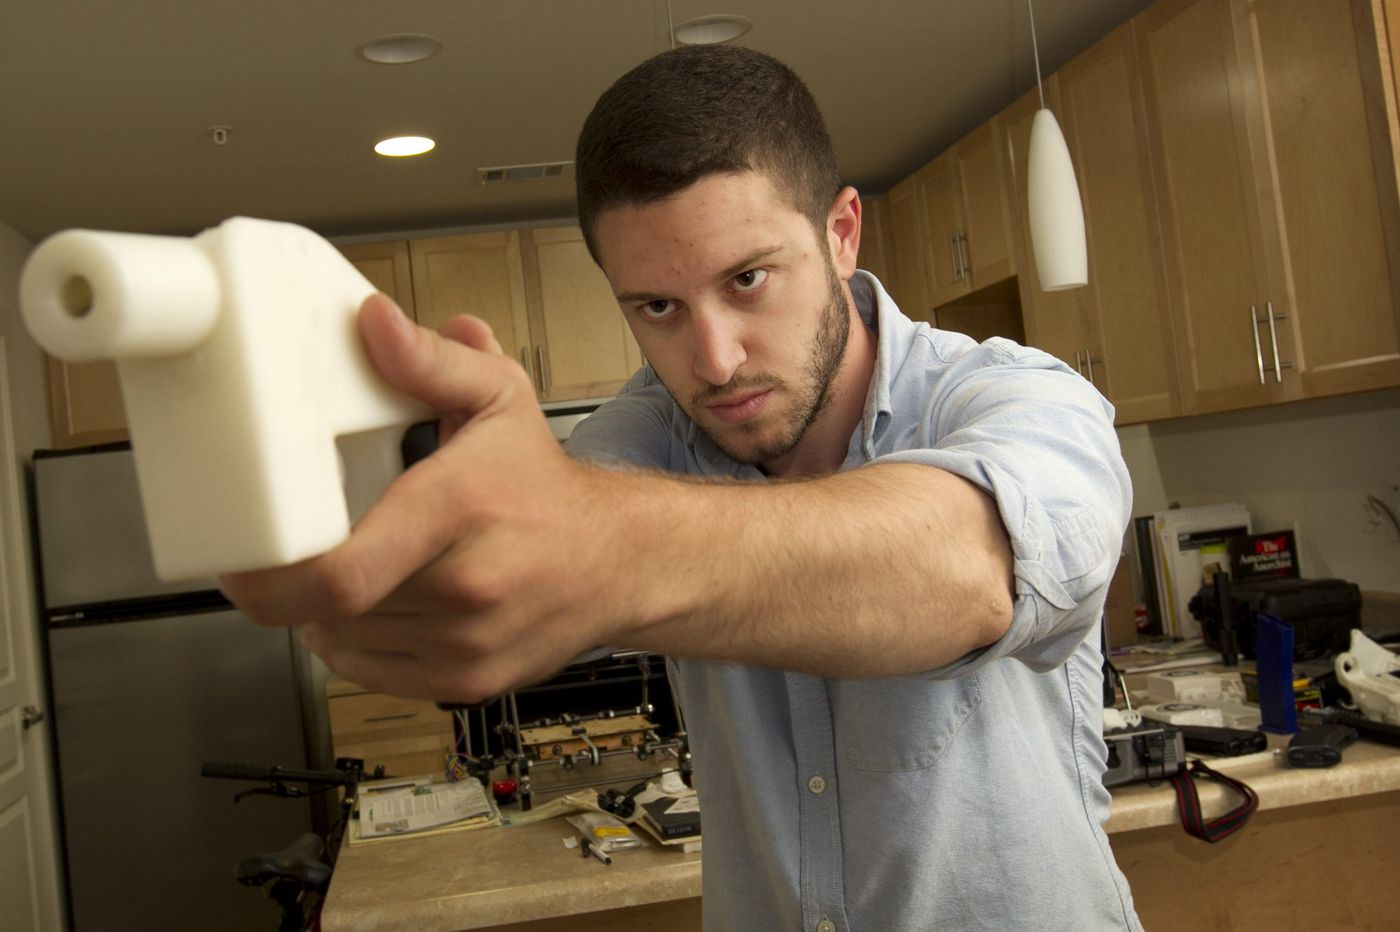 Cody Wilson, creator of 3D-printed gun designs, charged with sexual assault in Texas